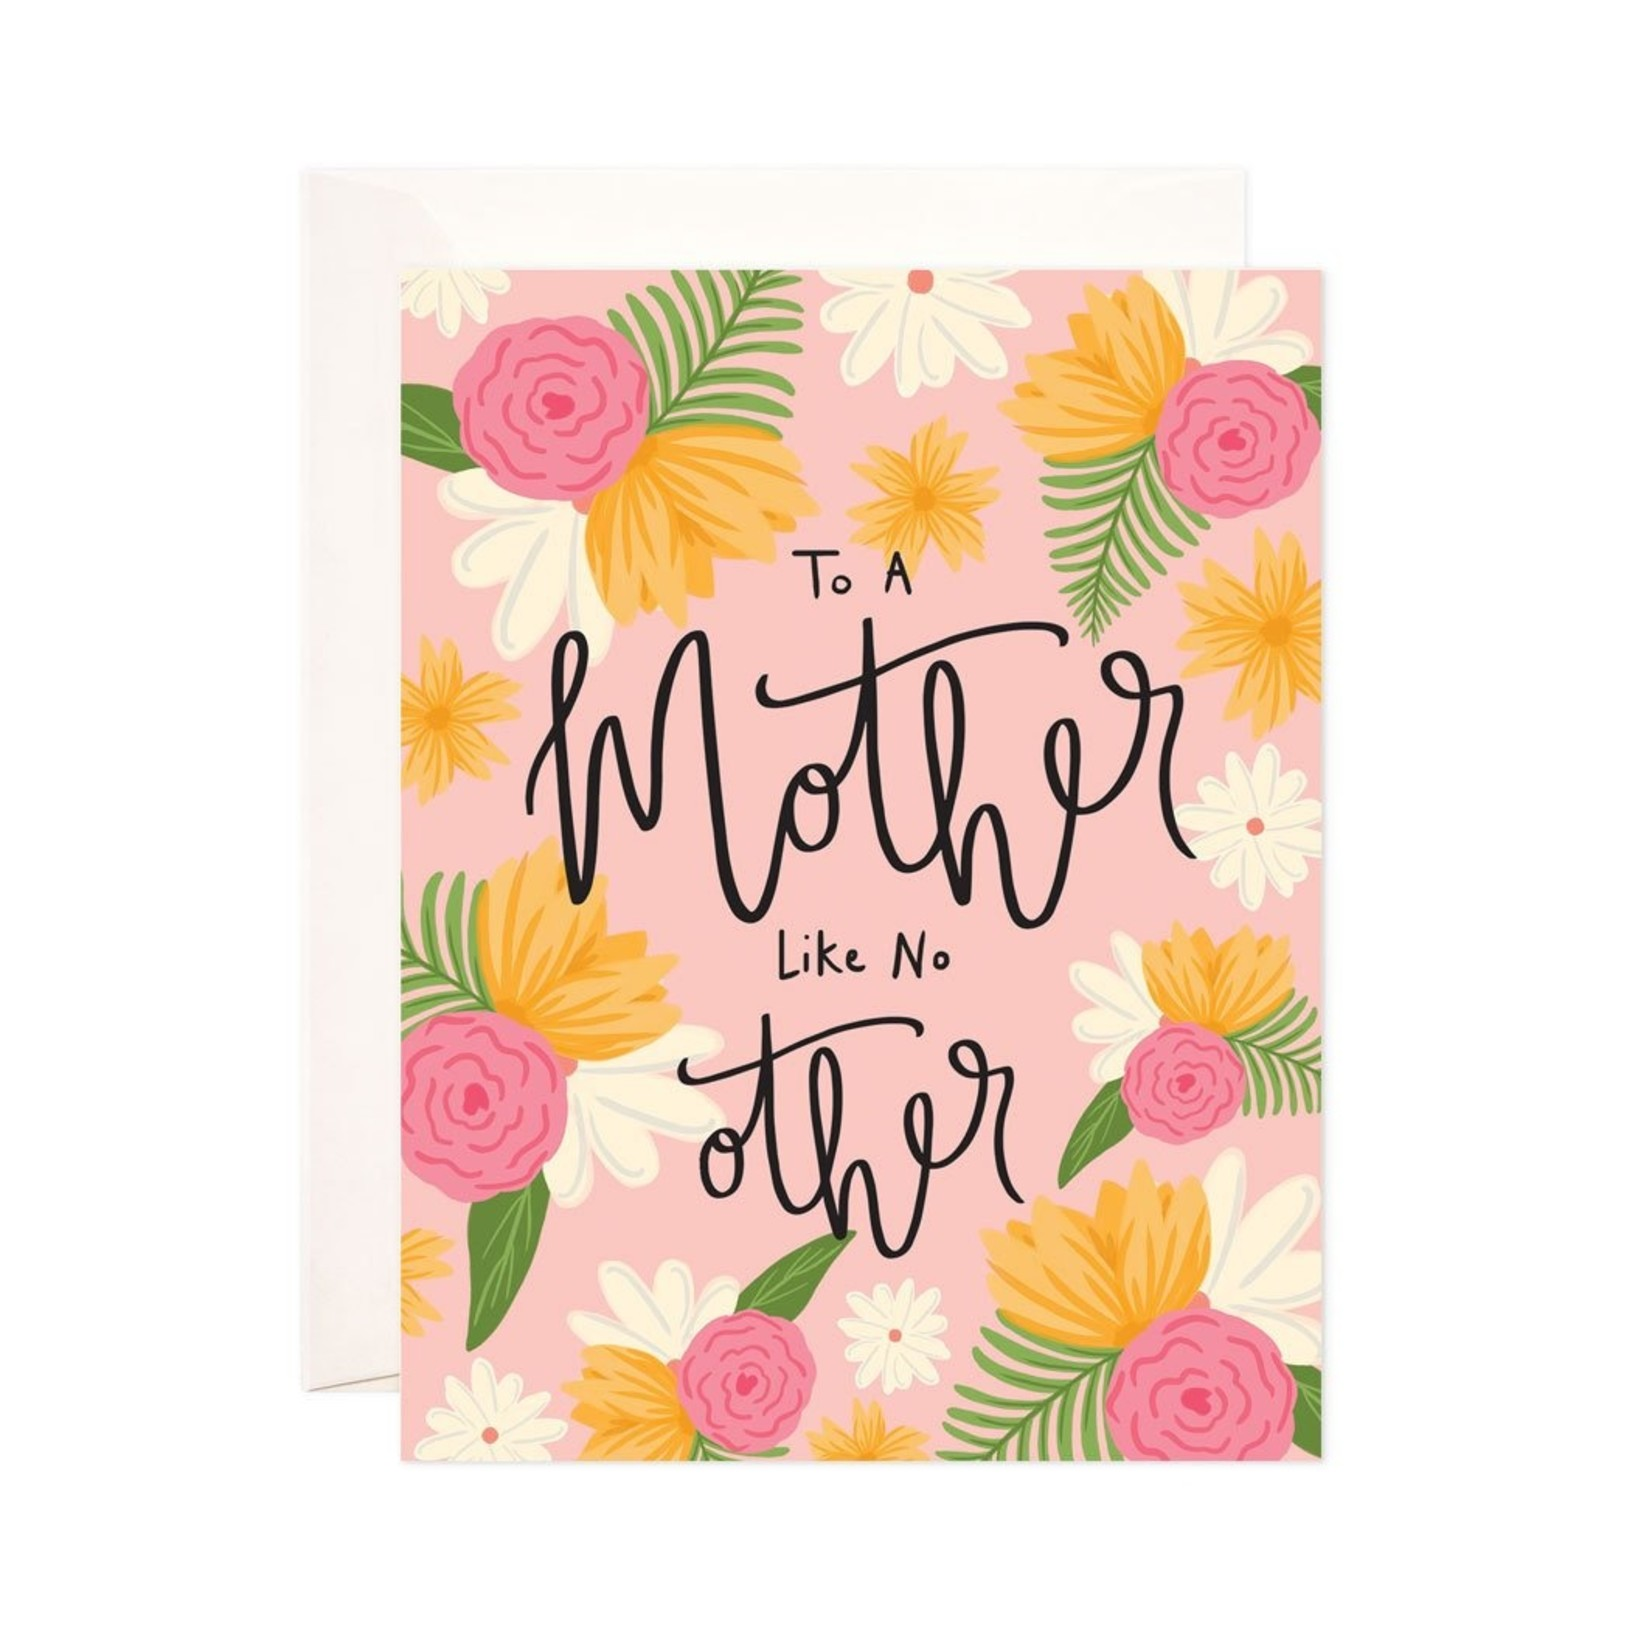 Mother's Day: Mother Like No Other